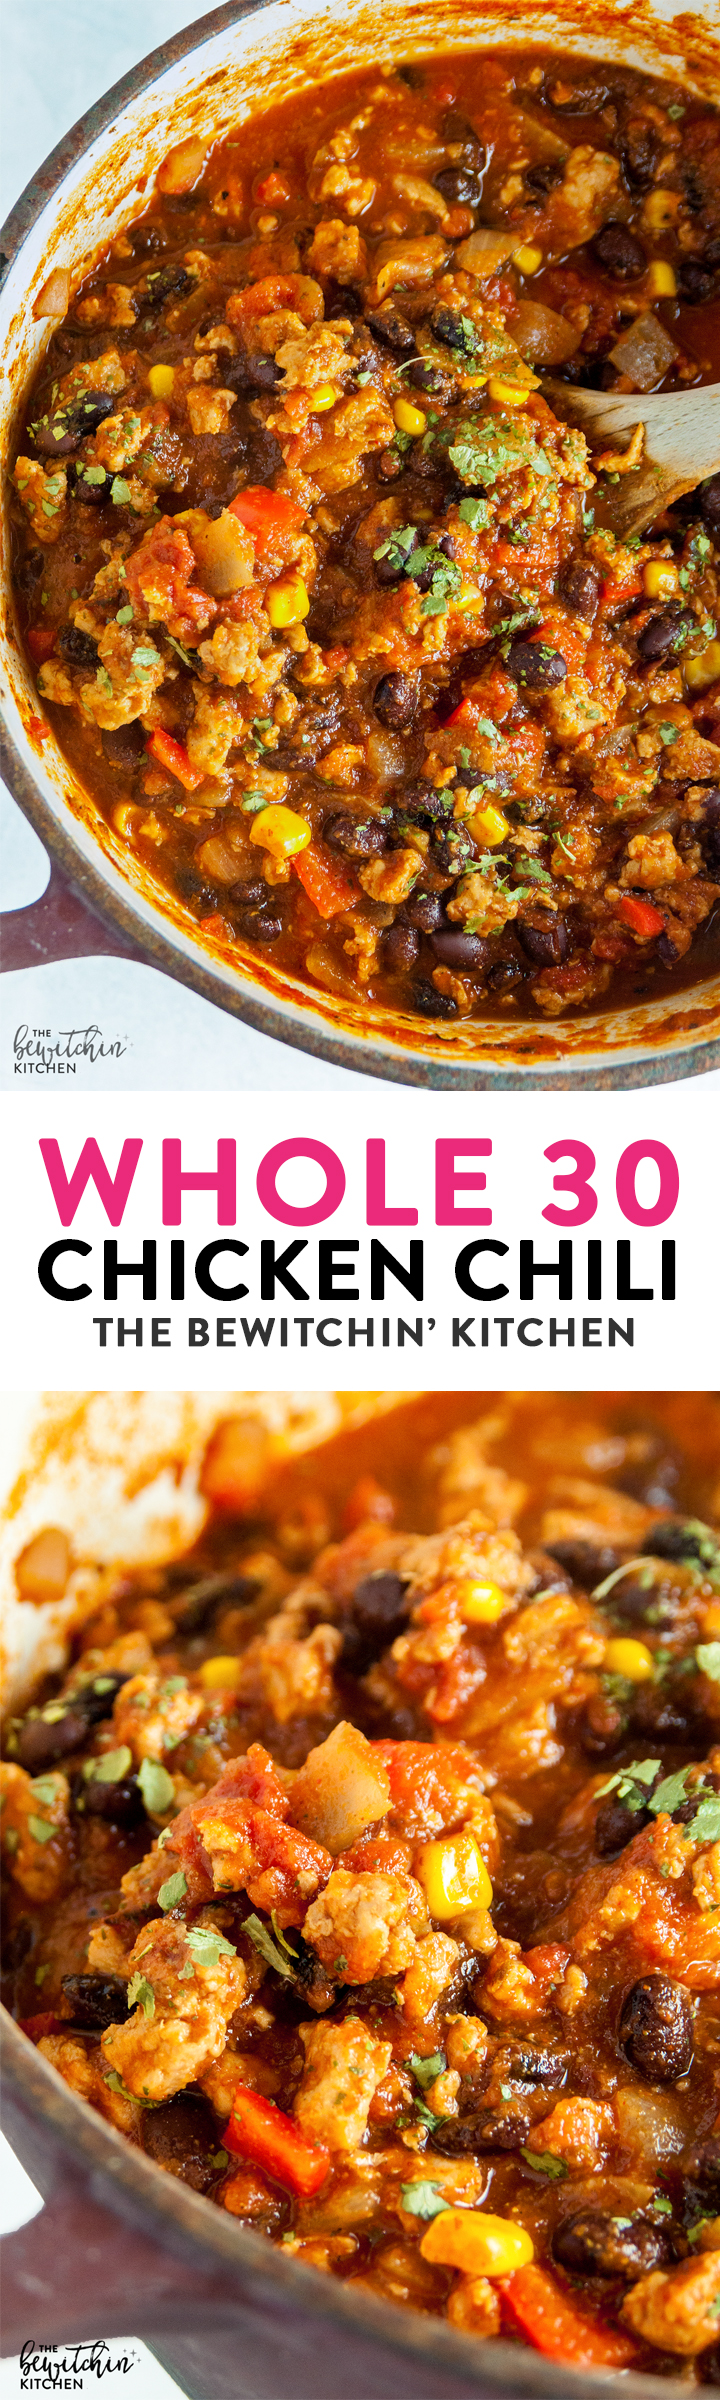 Whole30 Chicken Chili a hearty and healthy chili recipe is lightened up with ground chicken and is whole 30, paleo, and 21 day fix